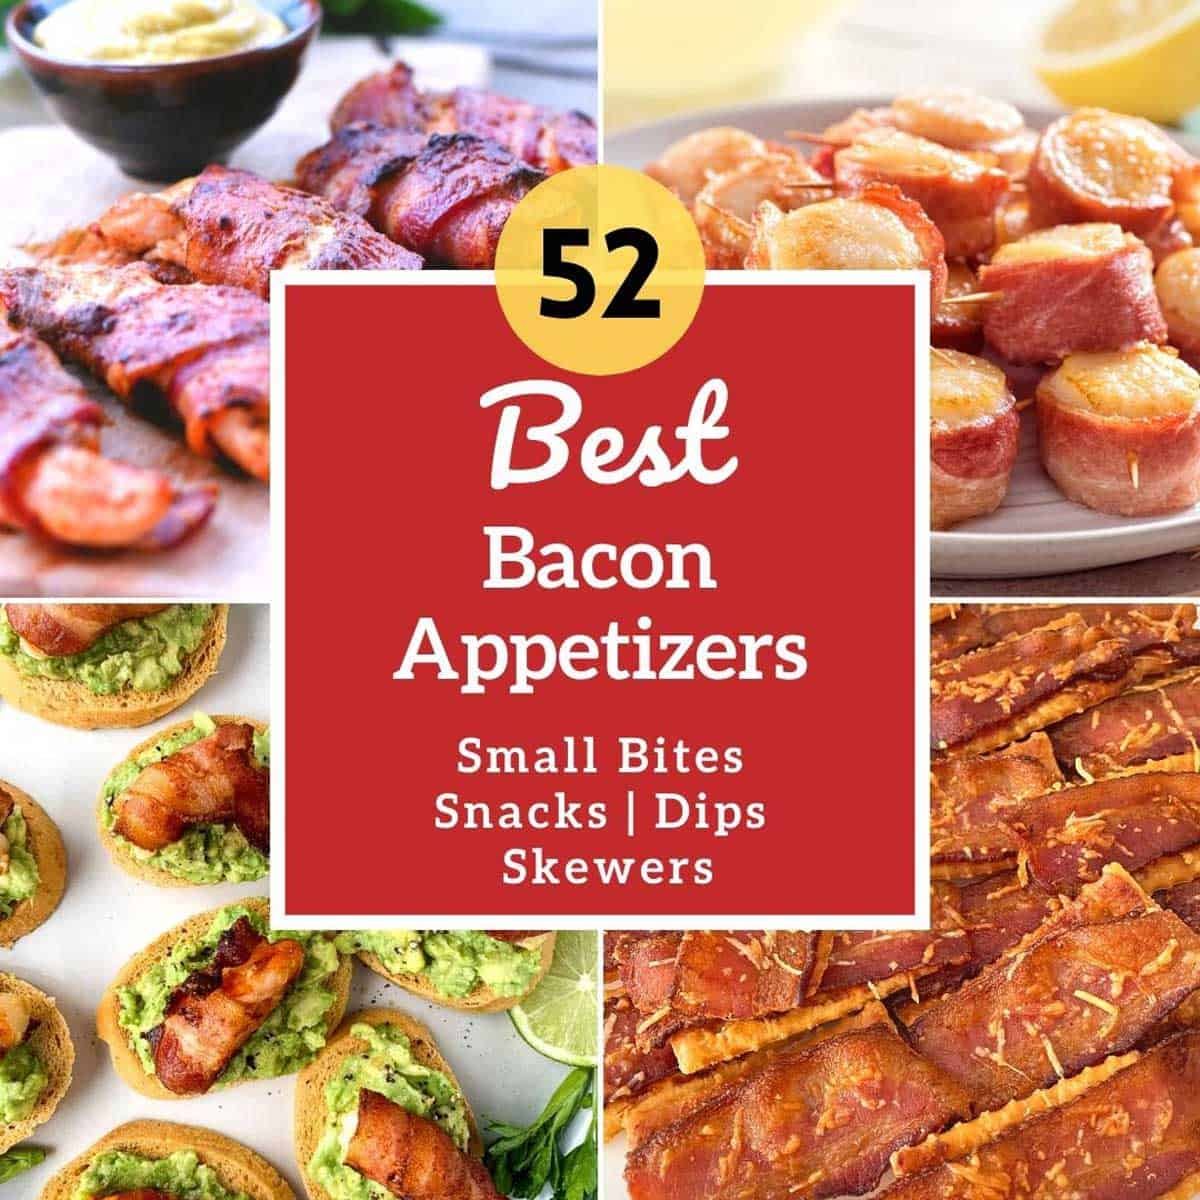 """Bacon wrapped sweet potatoes, scallops, bacon crackers and bacon crostini with the text """"52 Best Bacon Appetizers"""" in a red box."""